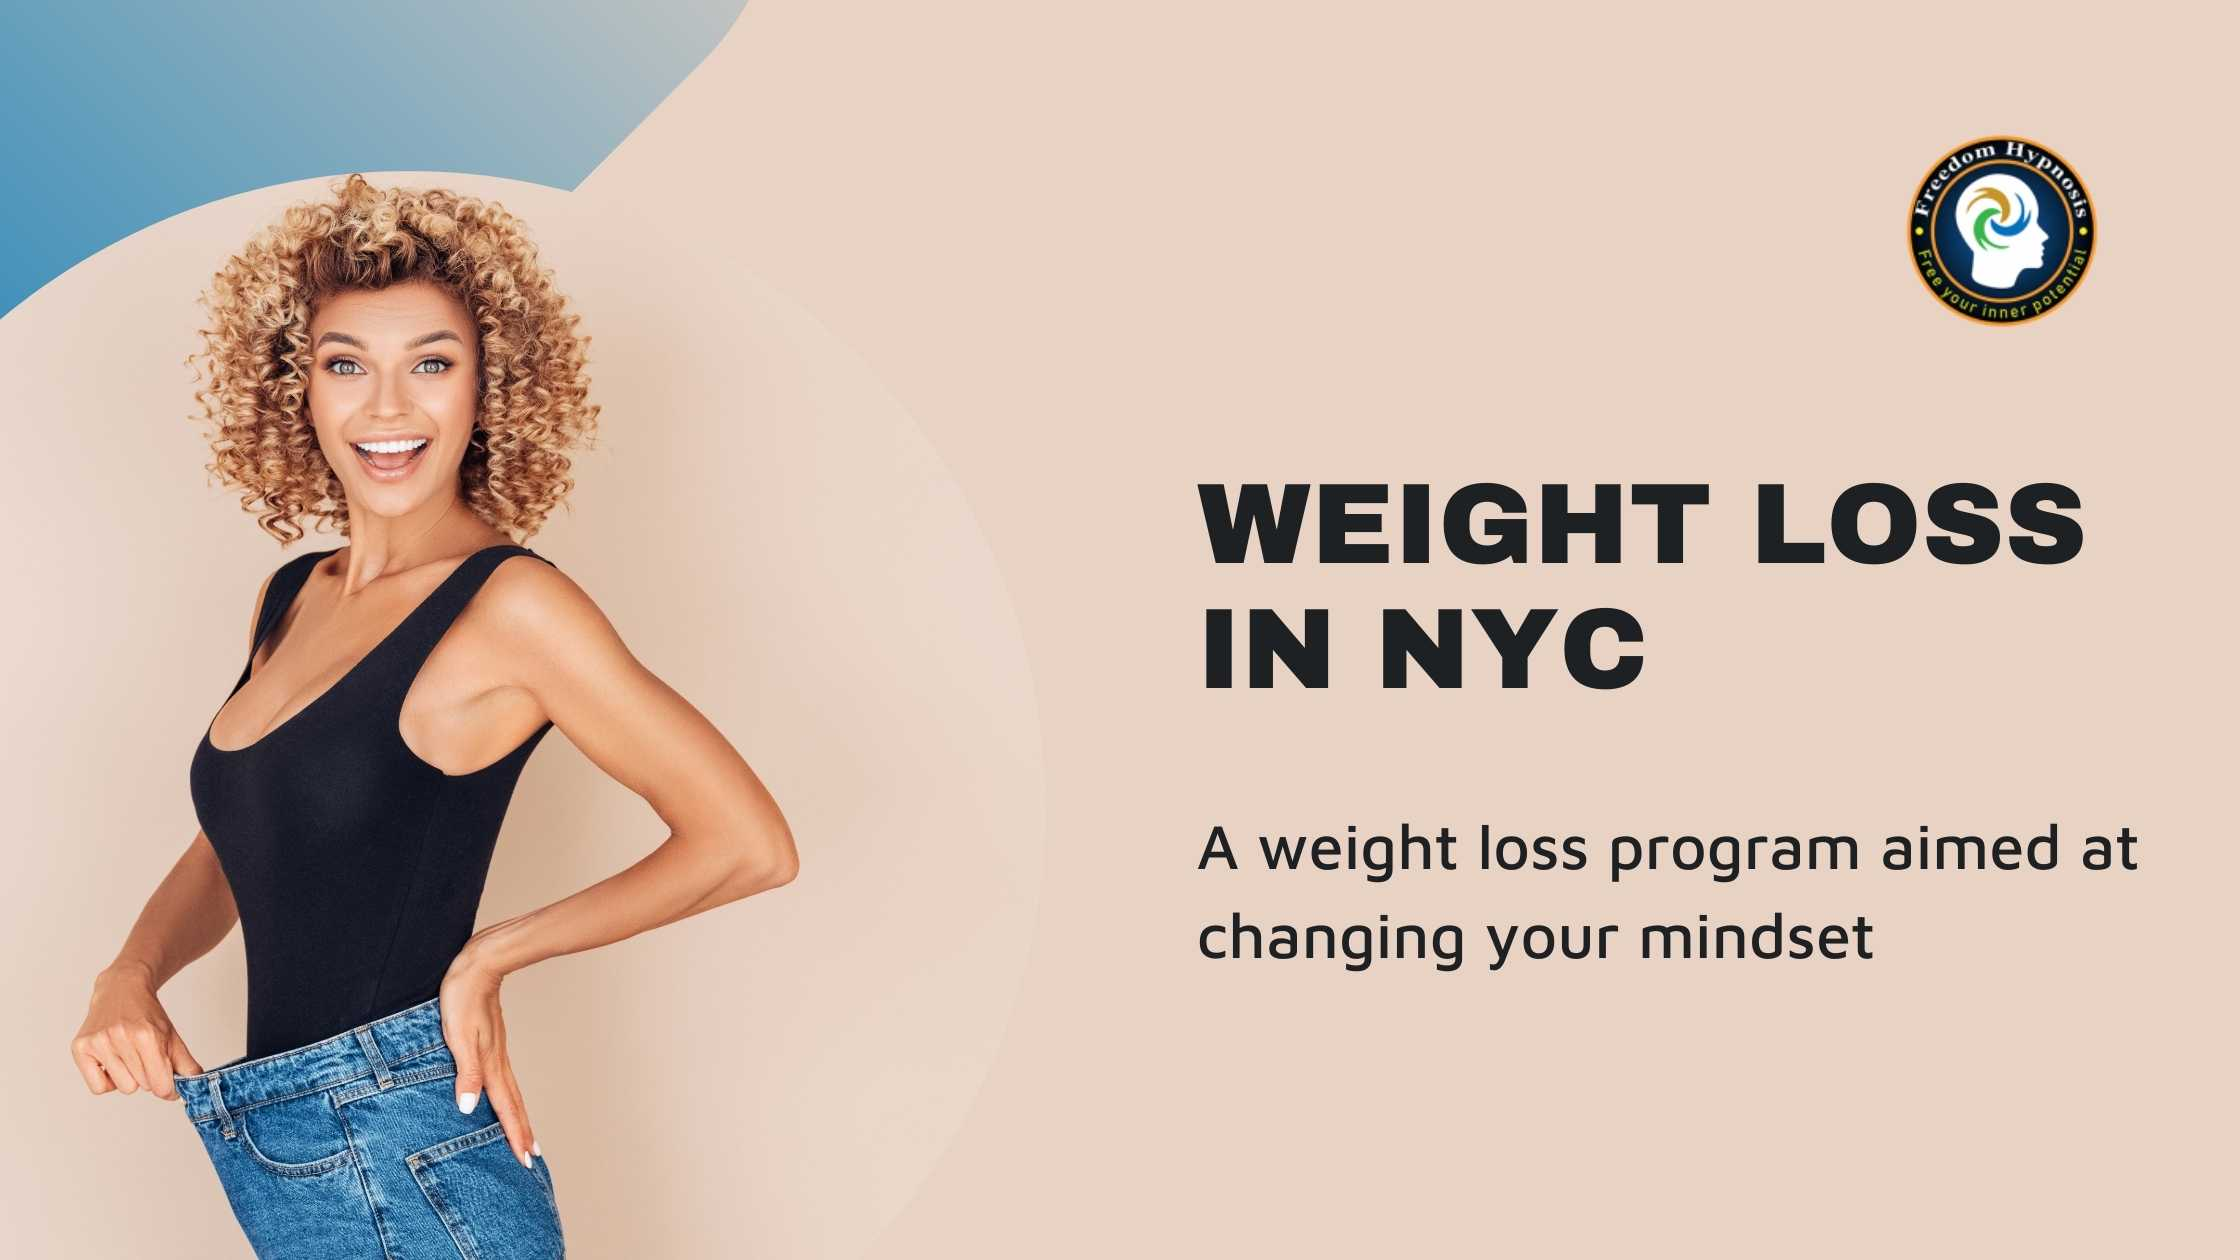 woman successful weight loss NYC through hypnosis